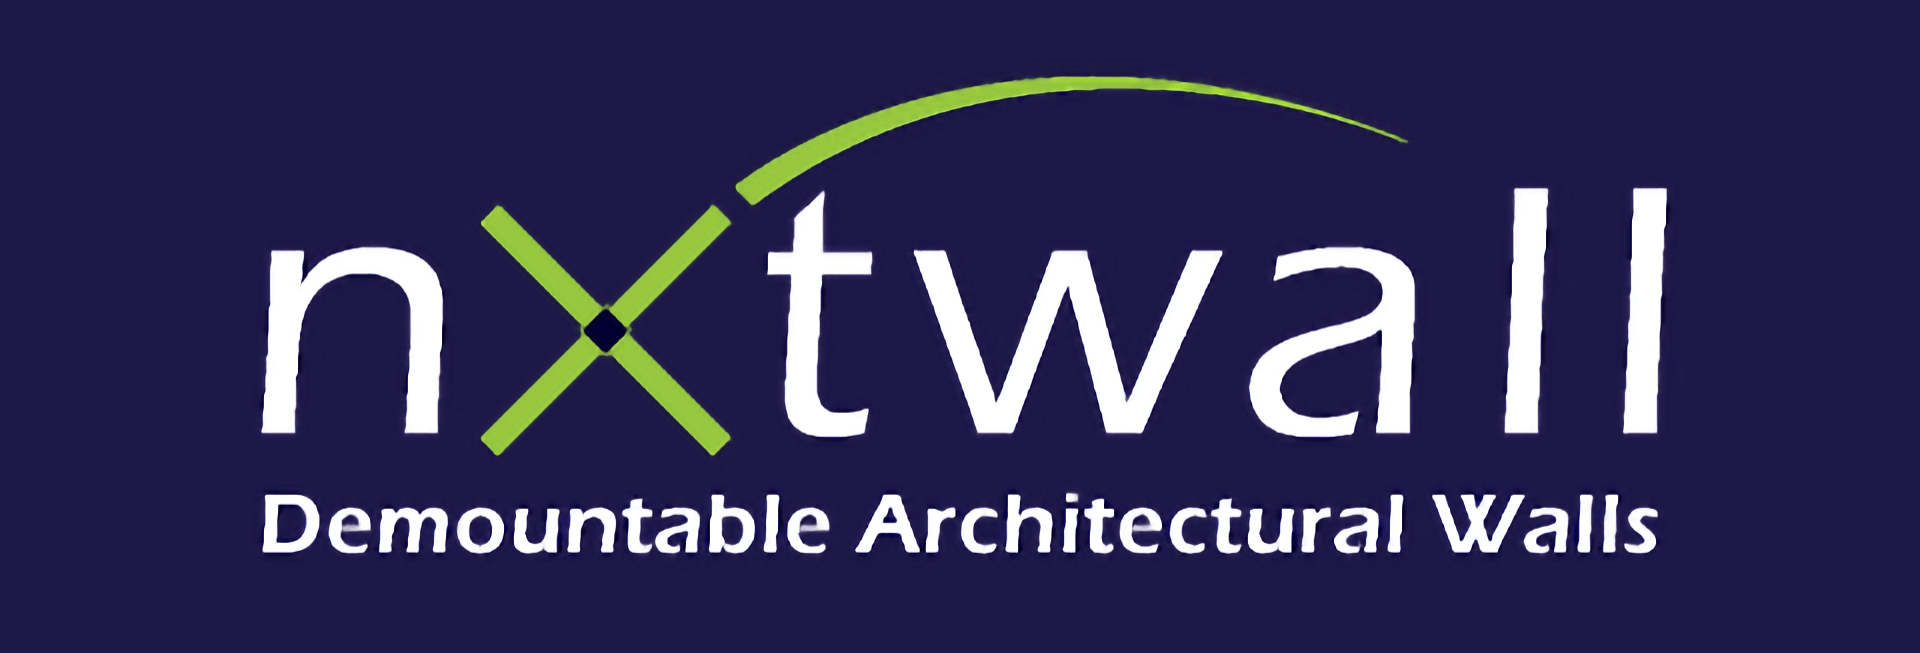 NxtWall Architectural Wall Systems